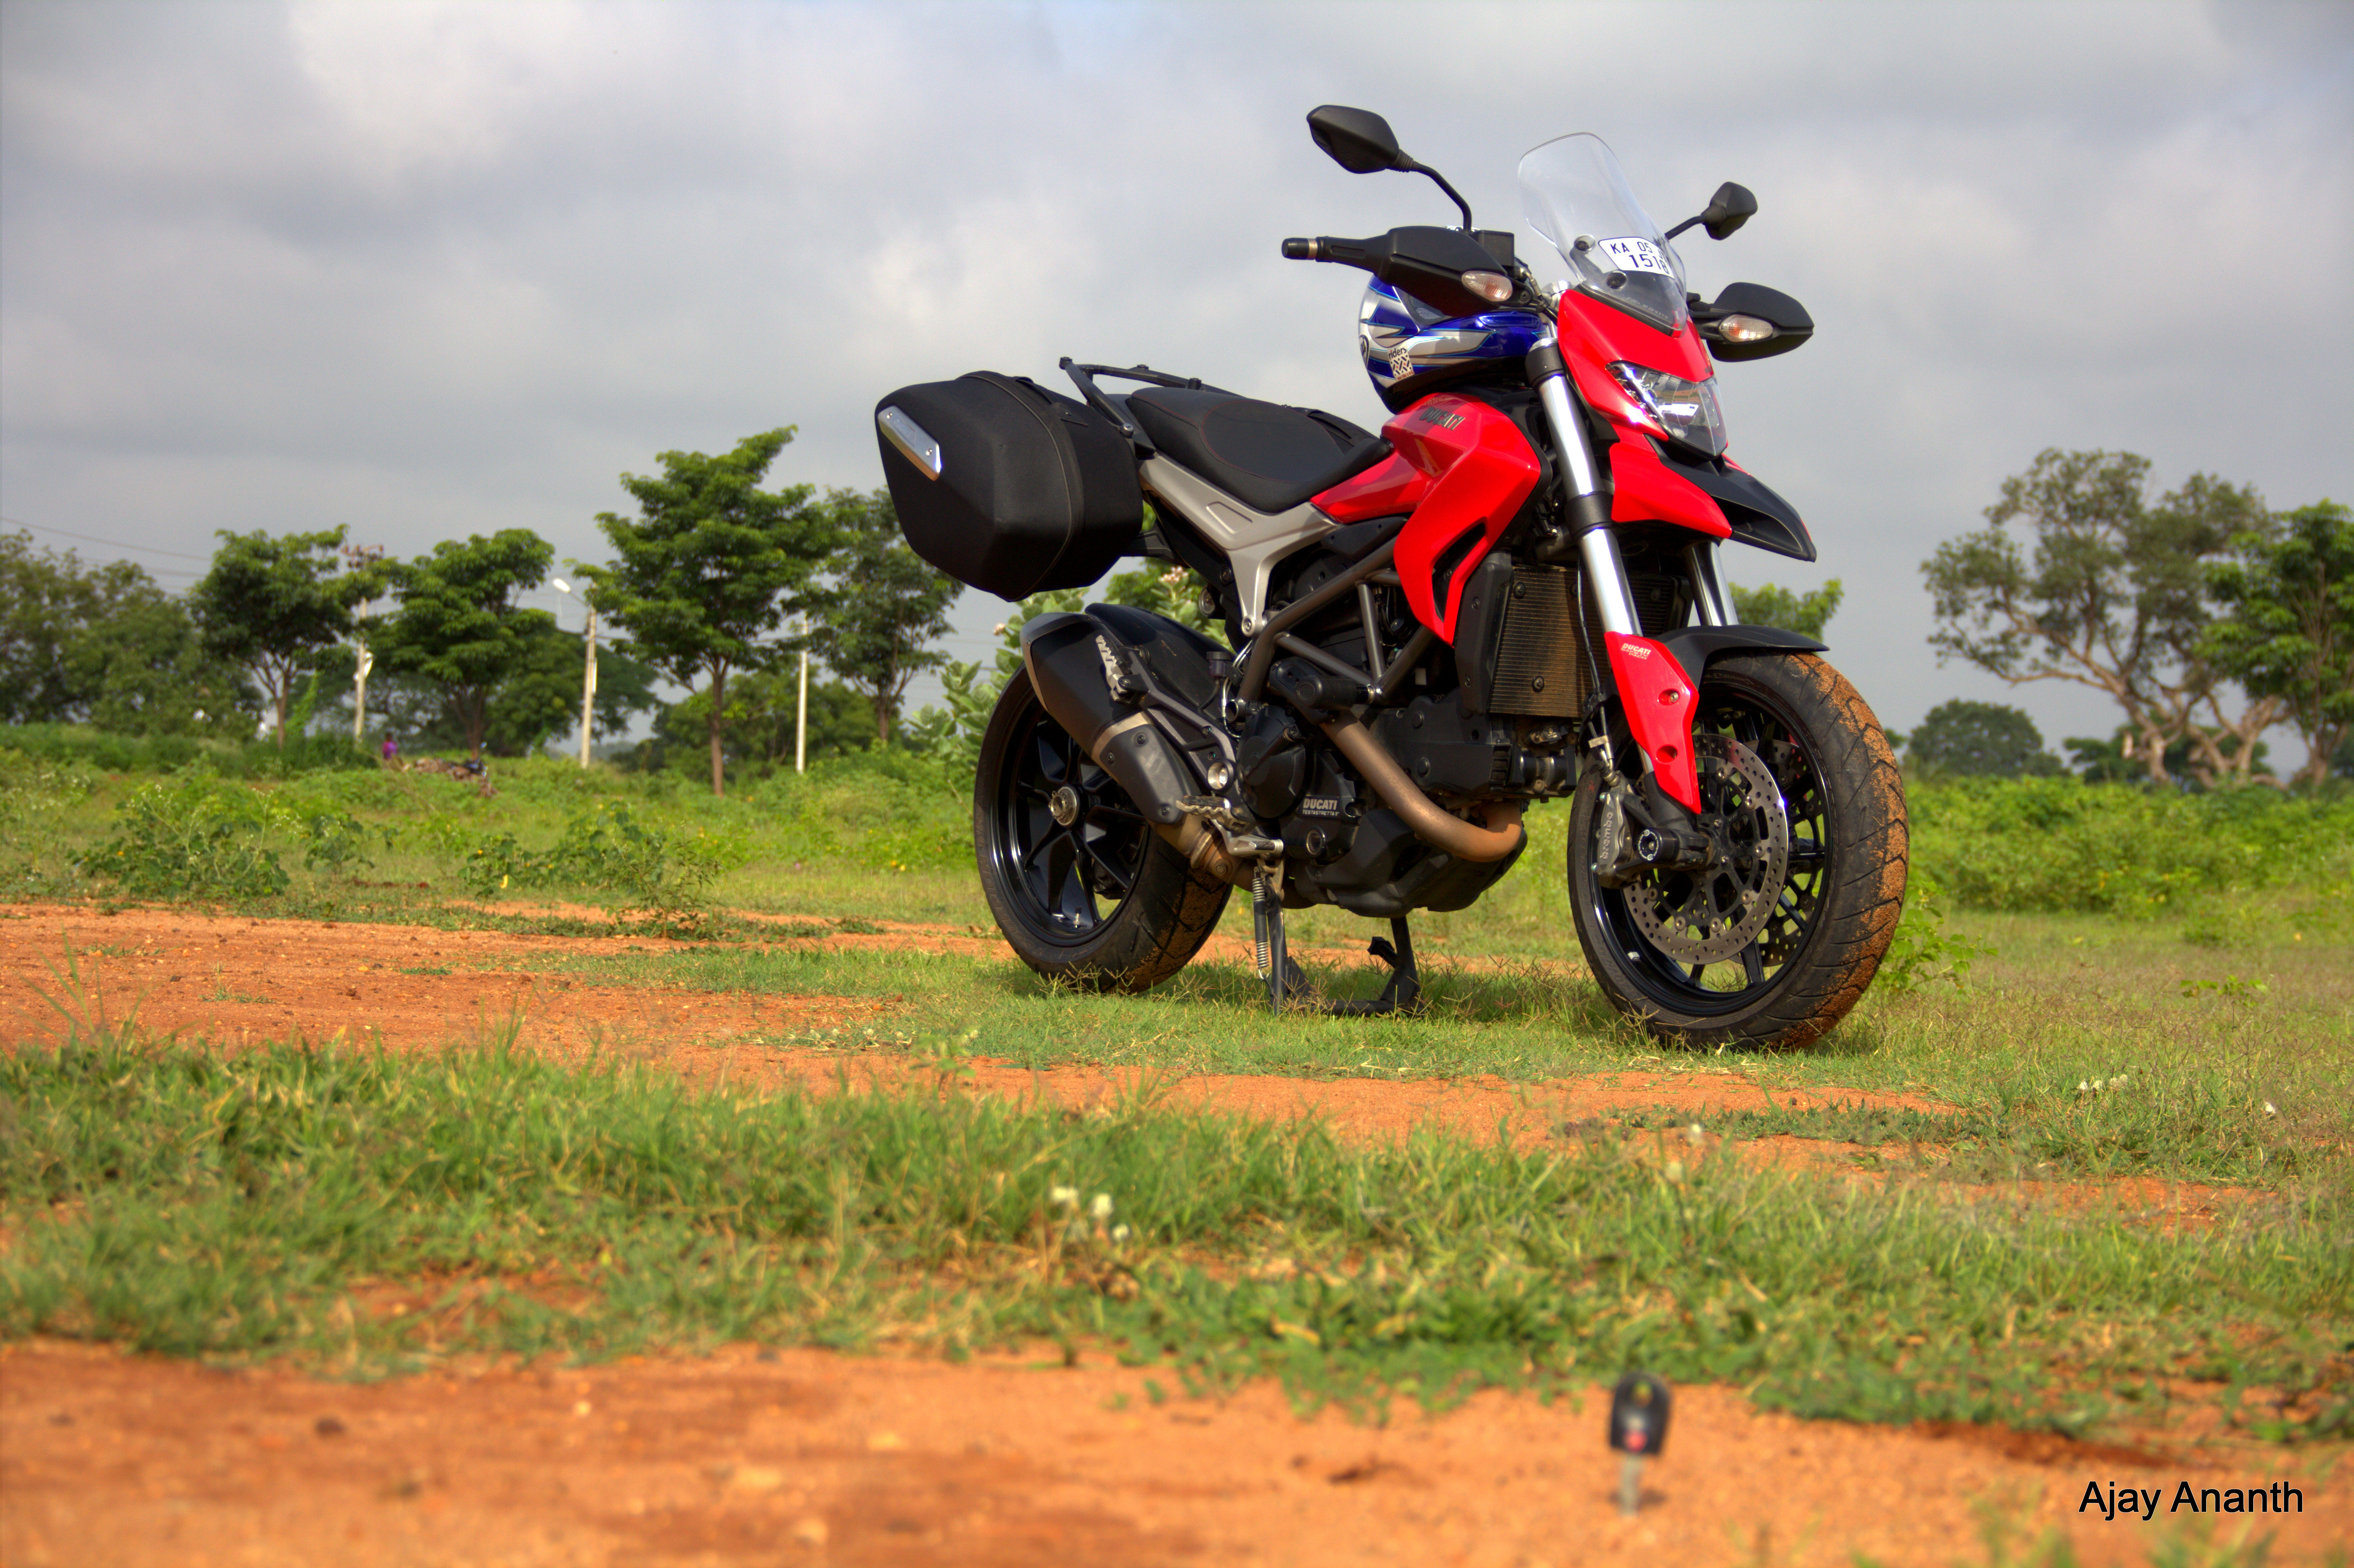 2015 ducati hyperstrada 821 review motorcycle journeys in search of food. Black Bedroom Furniture Sets. Home Design Ideas